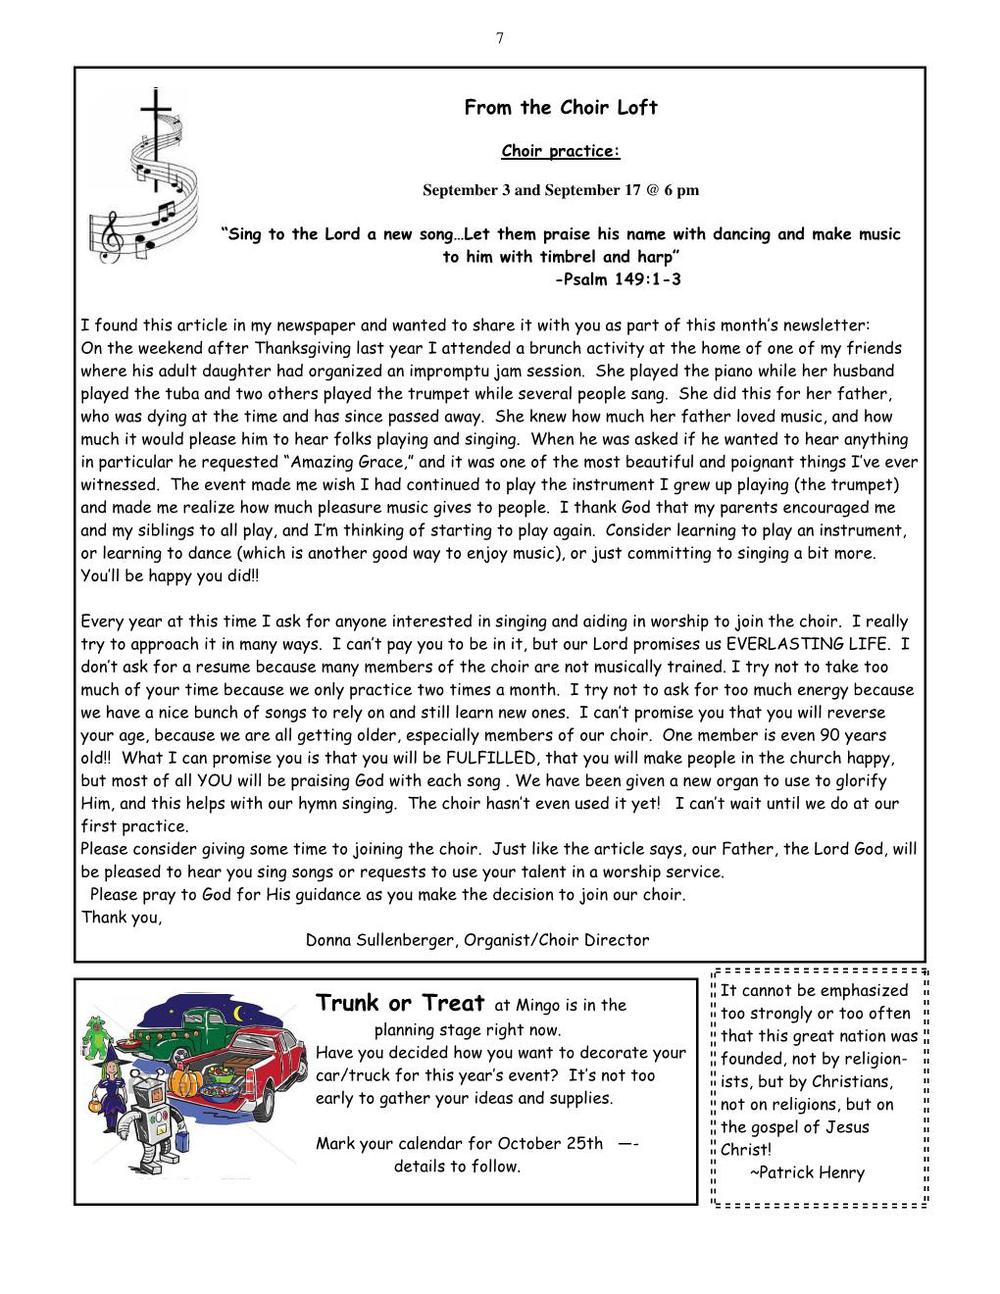 SEPTEMBER NEWSLETTER Page 007.jpg